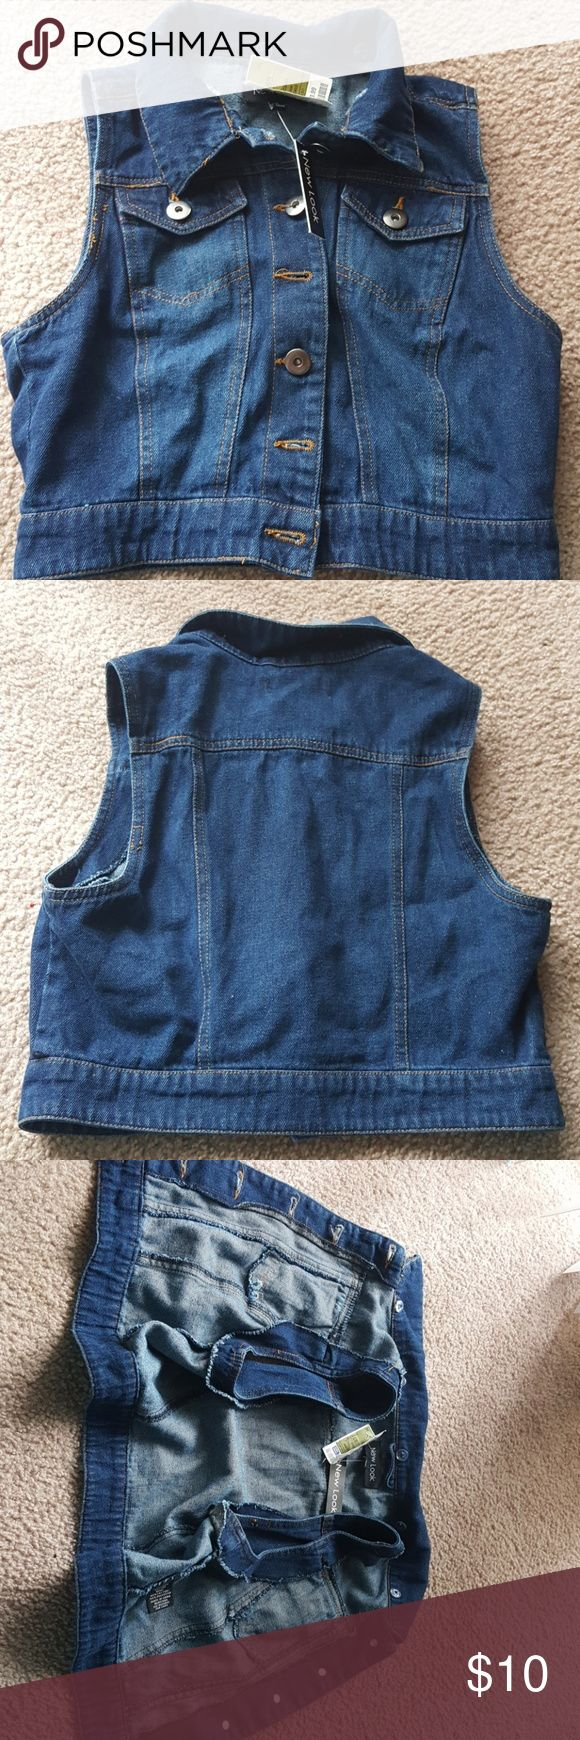 NWT! New Look Denim Jacket BTW! Denim sleeve less Jean jacket. Come get it, you can match it with a skirt. Never worn, clean. Comes from a [Smoke-free home & Dog free home] New Look Jackets & Coats Vests